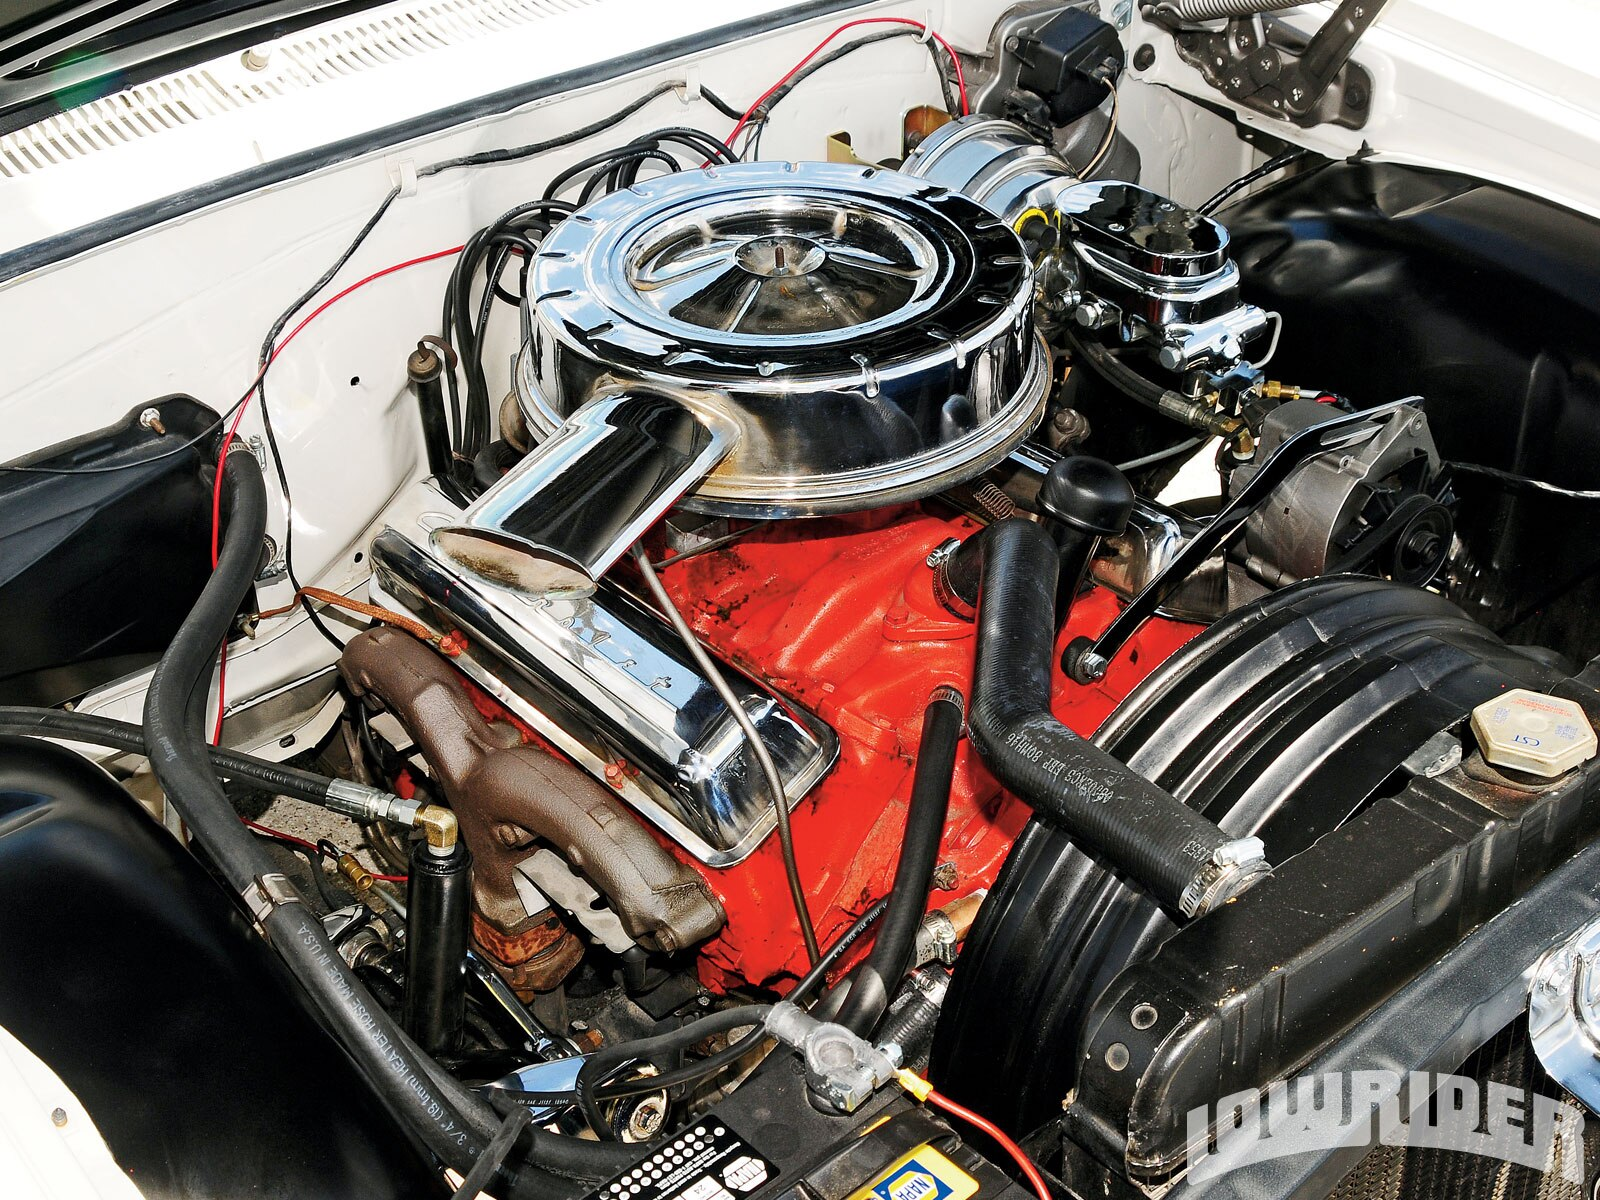 2007 Chevrolet Impala Engine Diagram 1964 Chevrolet Impala Convertible Lowrider Magazine